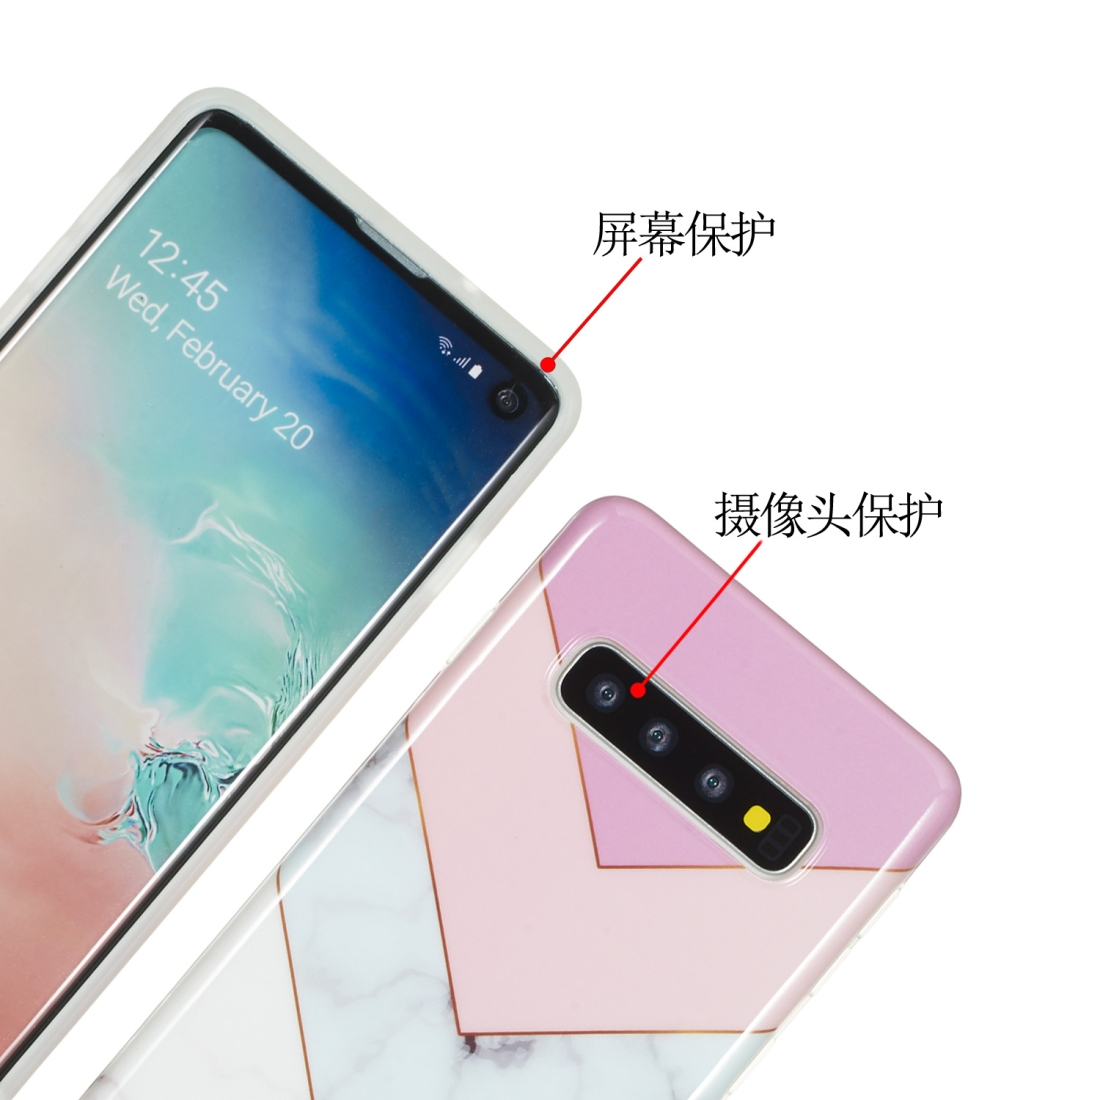 TPU Protective Case For Galaxy S10 (Stitching Tricolor)